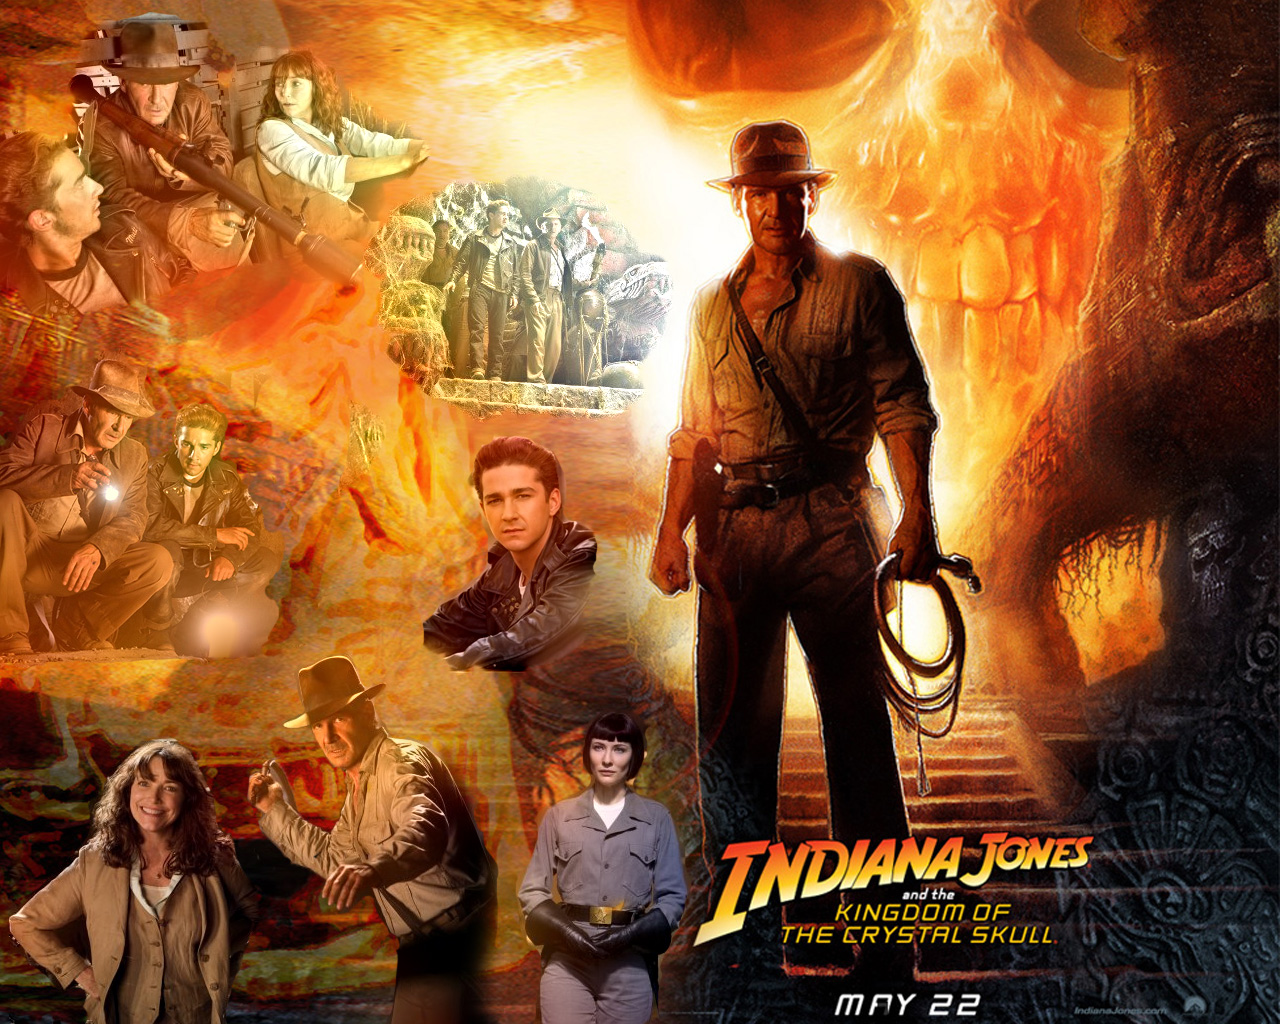 Indiana Jones Wallpapers Wallpaperholic 1280x1024